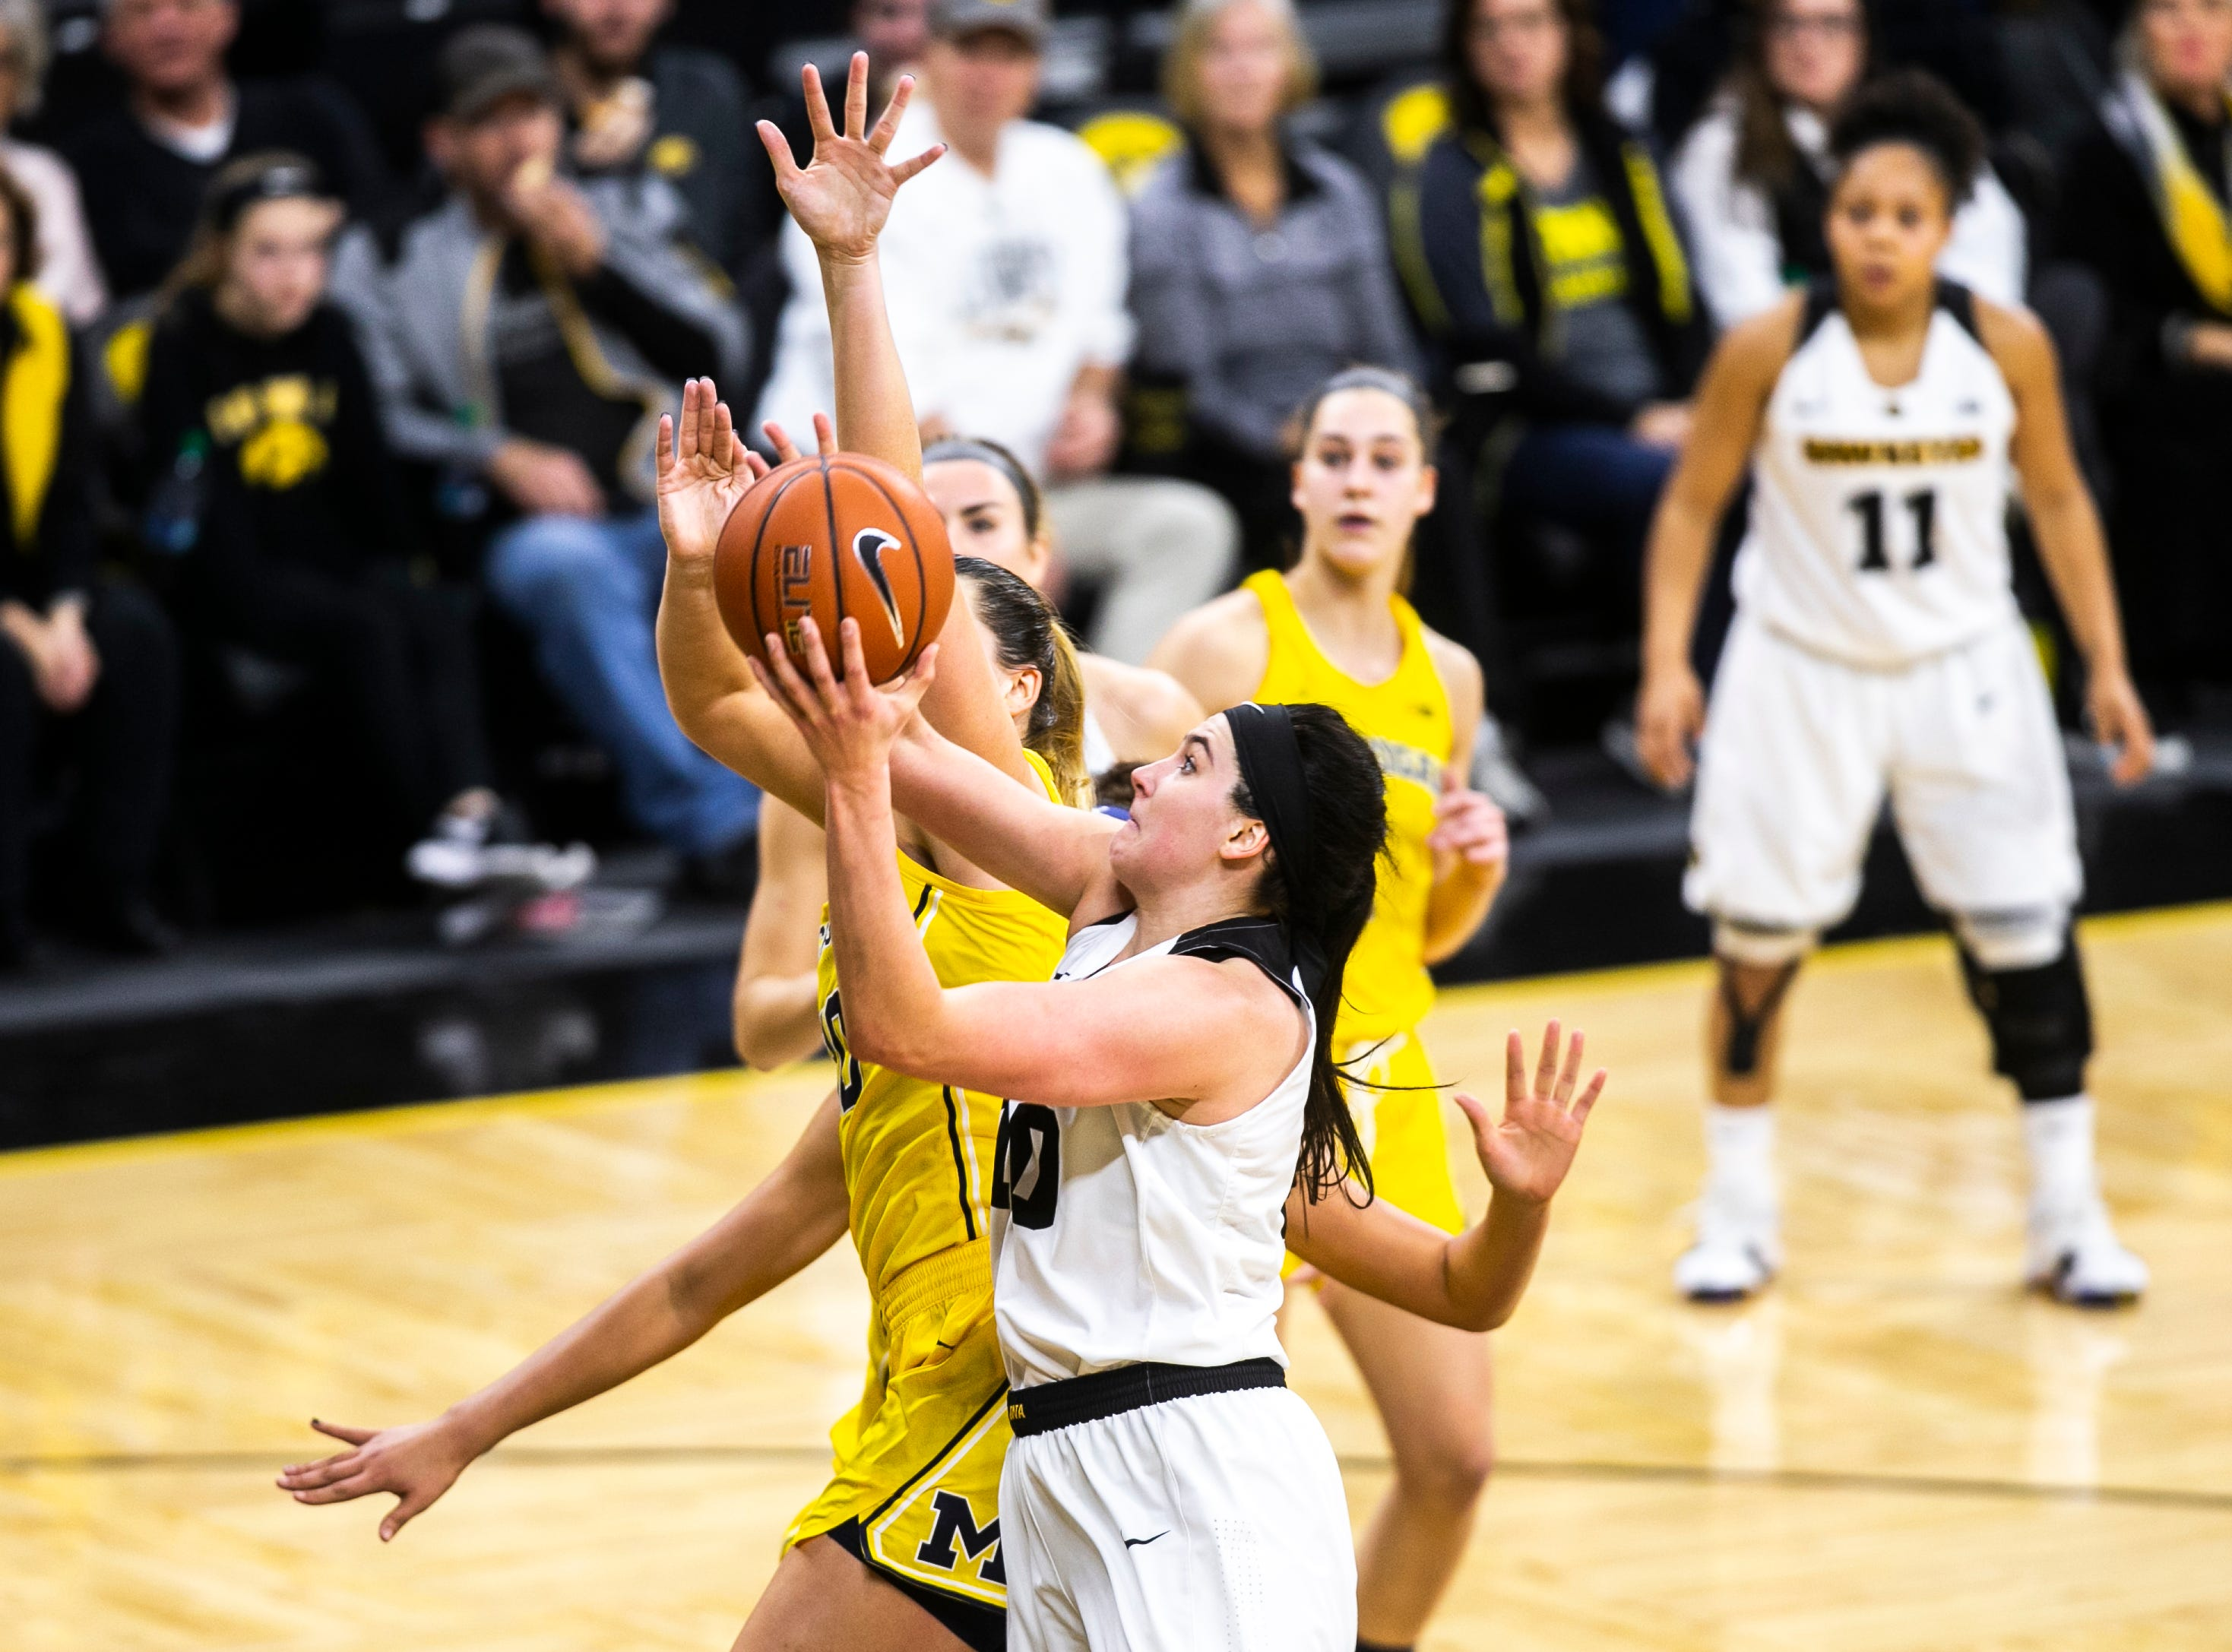 Iowa forward Megan Gustafson (10) attempts a basket during a NCAA Big Ten Conference women's basketball game on Thursday, Jan. 17, 2019, at Carver-Hawkeye Arena in Iowa City, Iowa.